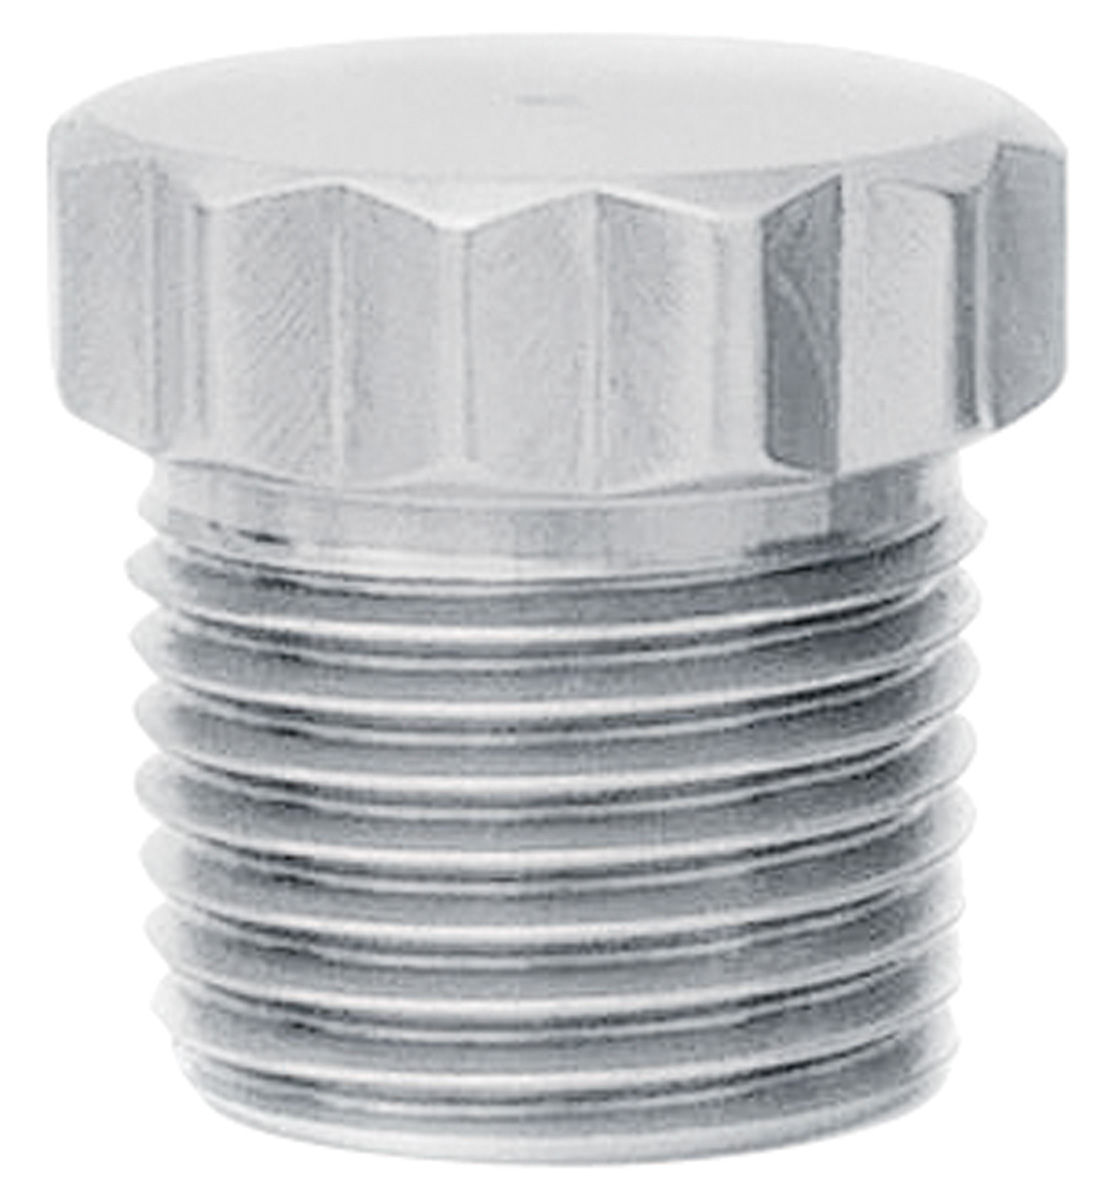 """Photo of Fitting: Stainless Steel Pipe Plug 7/8""""(12-pt) x 7/8""""(long) 1/2"""" NPT"""